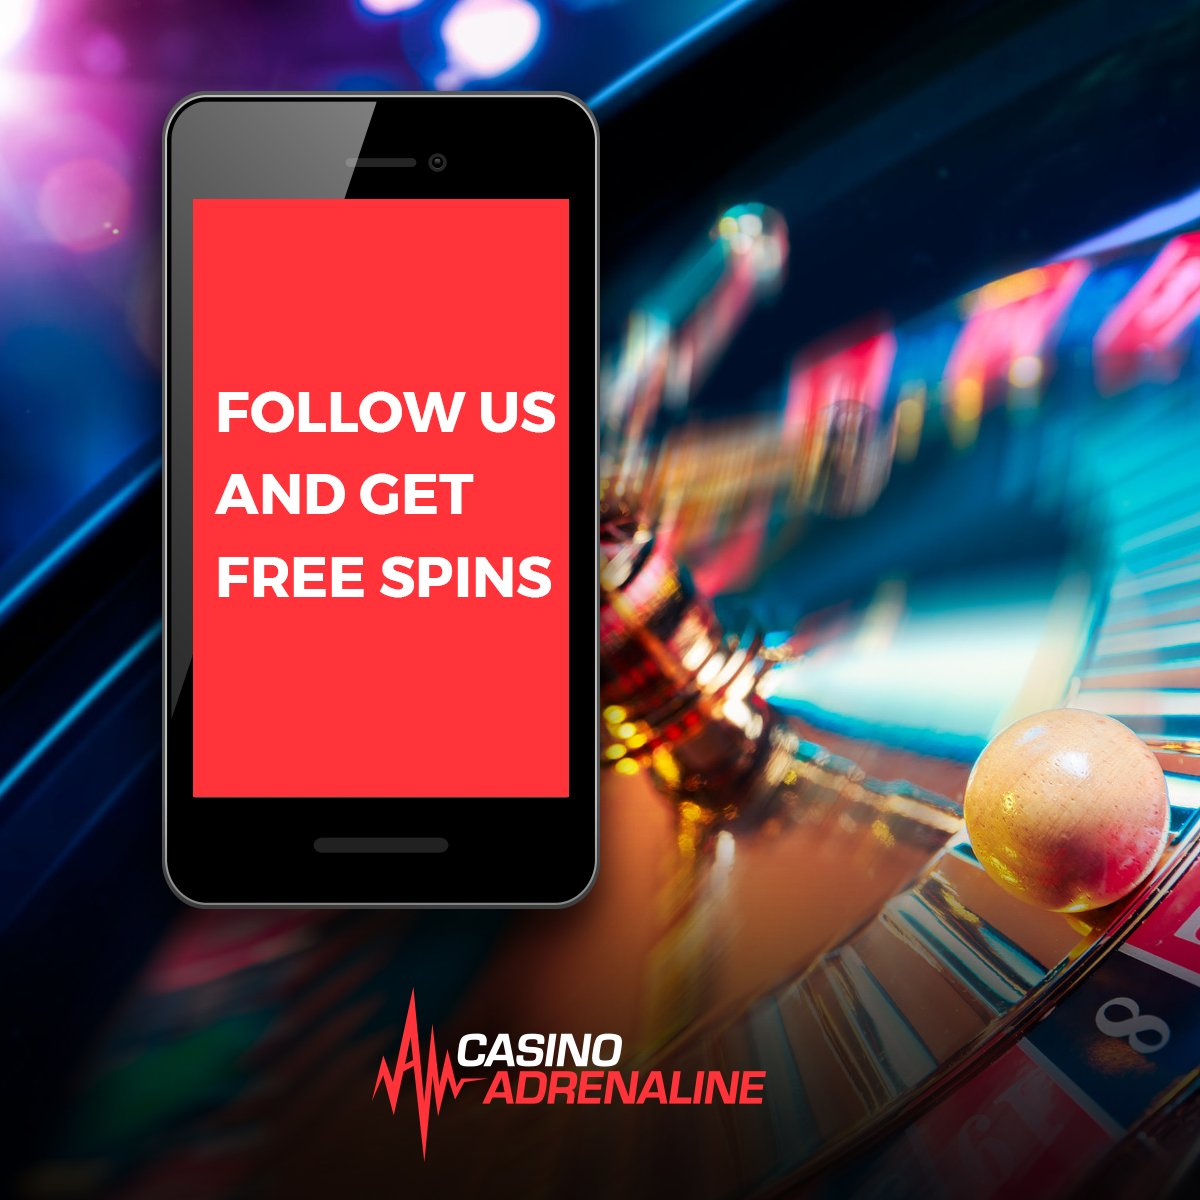 test Twitter Media - Follow us on Facebook and Twitter and be rewarded for it! Become our fan and follower to get 10 (no deposit) #freespins.  https://t.co/oSXfIB6U5E https://t.co/dDLAZglT4I